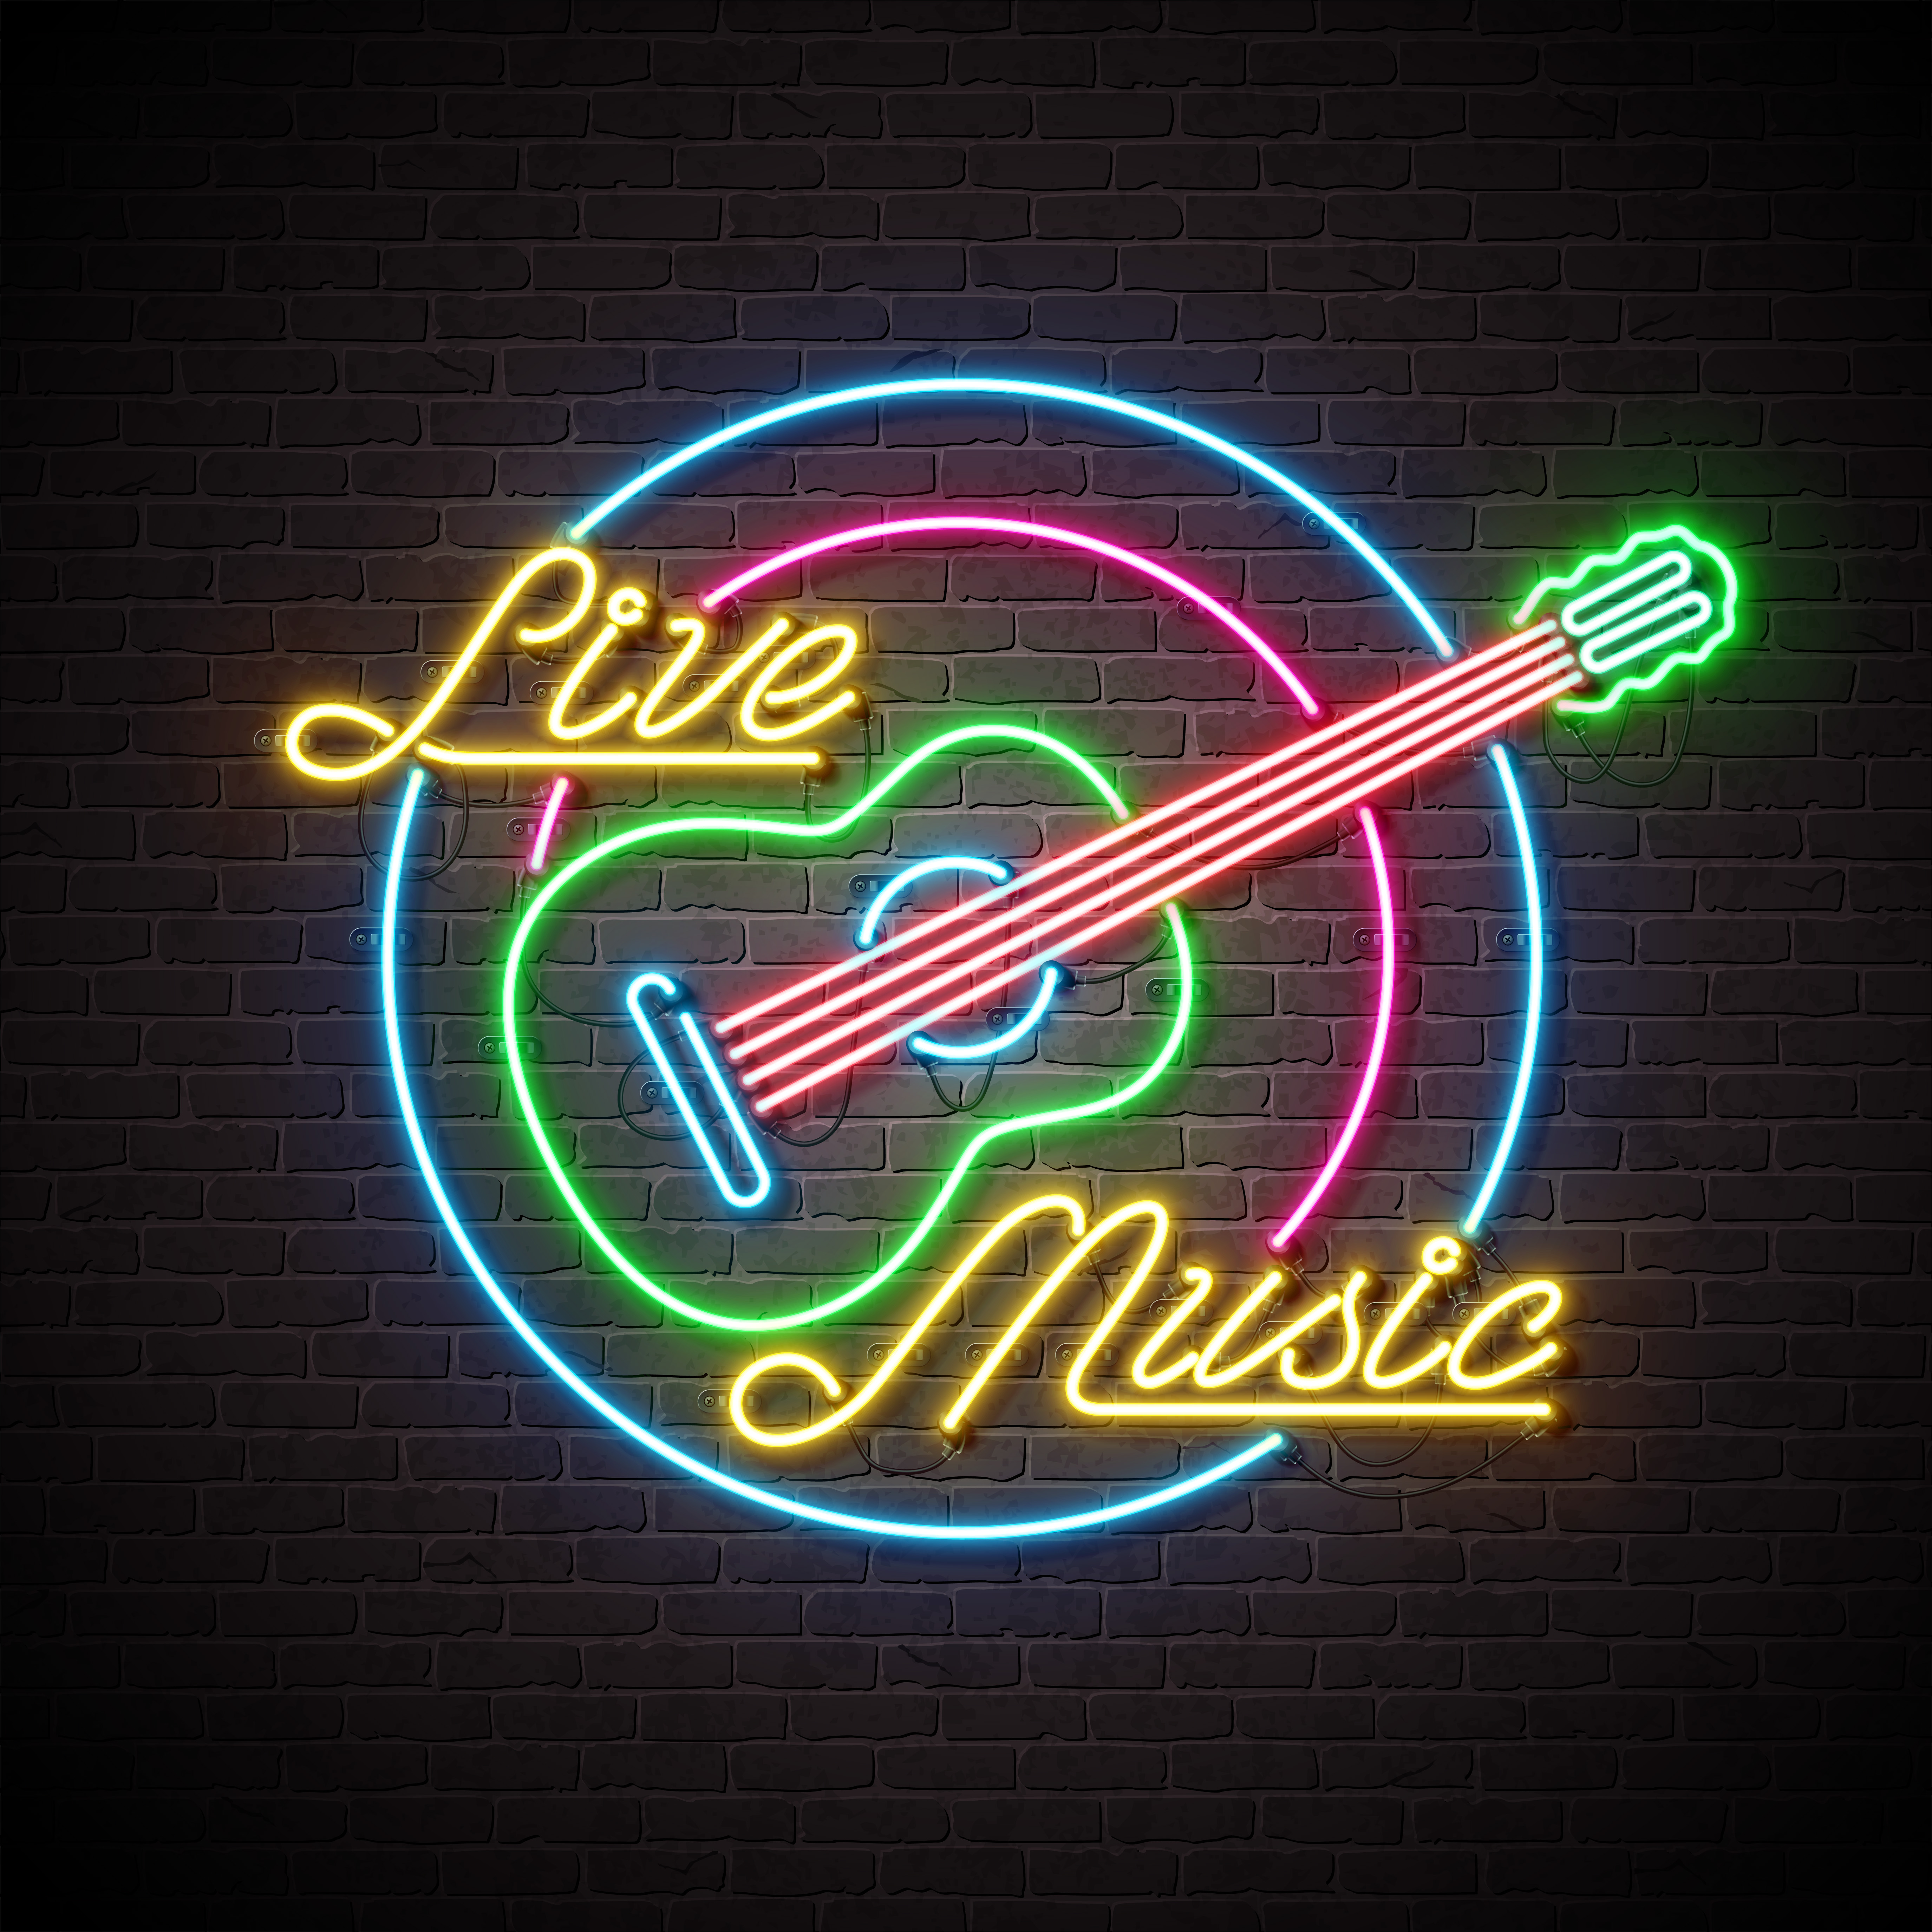 neon music live flyer sign background wall letter guitar template vector brick cover poster party musical decoration promotional notes note